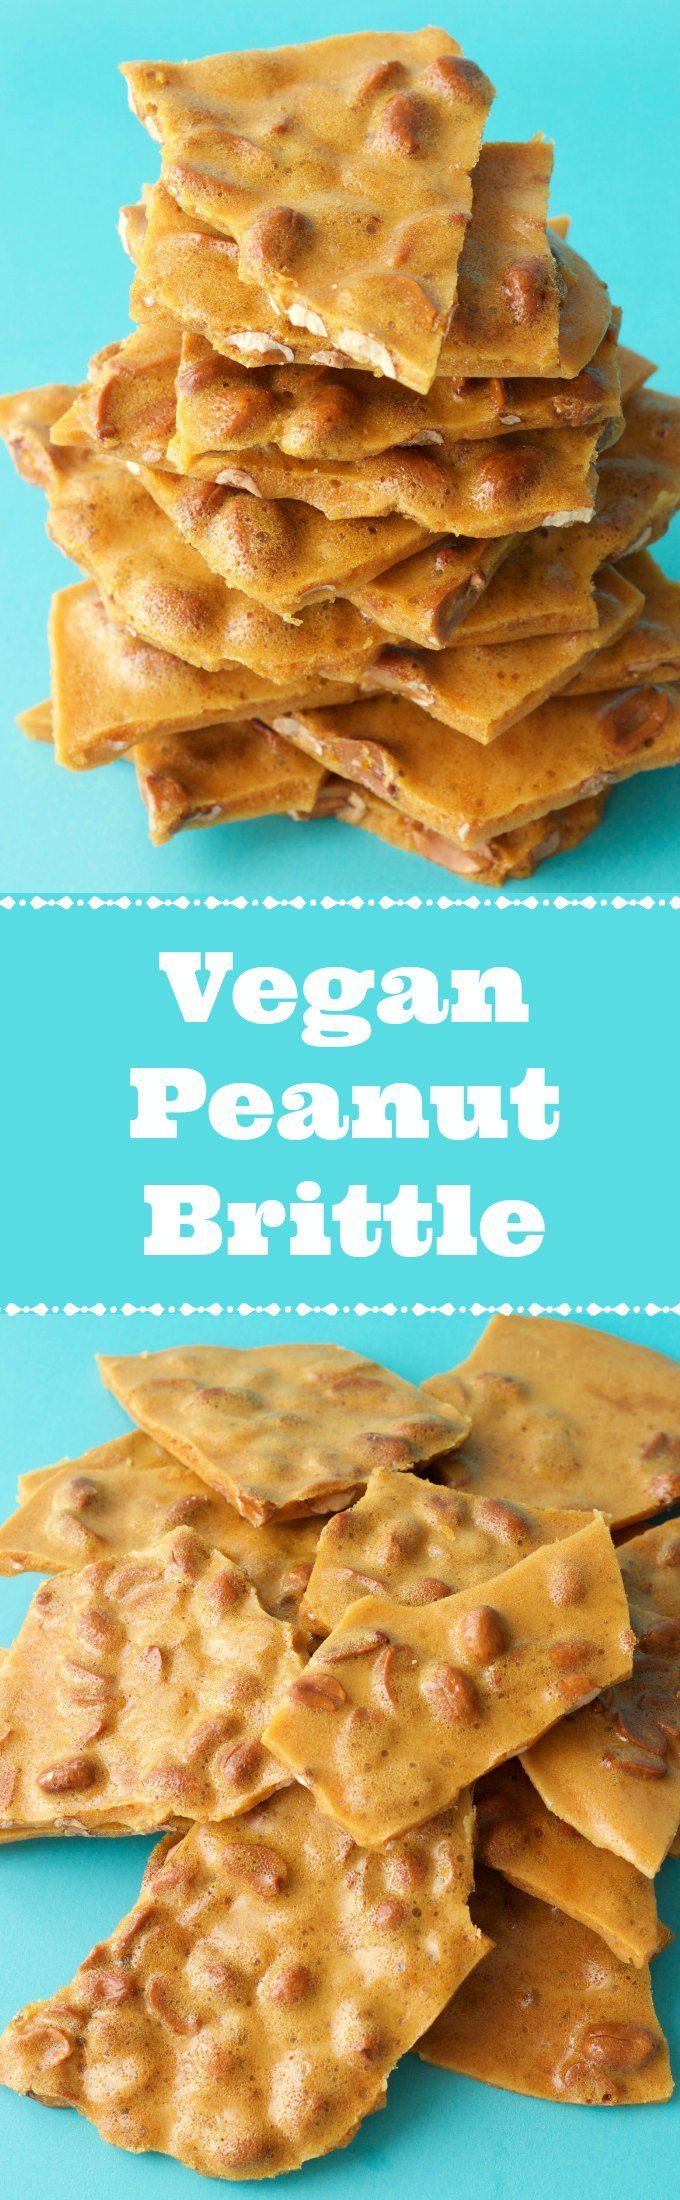 Vegan Peanut Brittle. Deliciously sweet and crunchy. Wonderful as a dessert or snack. Vegan | Vegan Desserts | Gluten-Free | Gluten Free Vegan | Dairy Free | Vegan Recipes | Vegan Candy